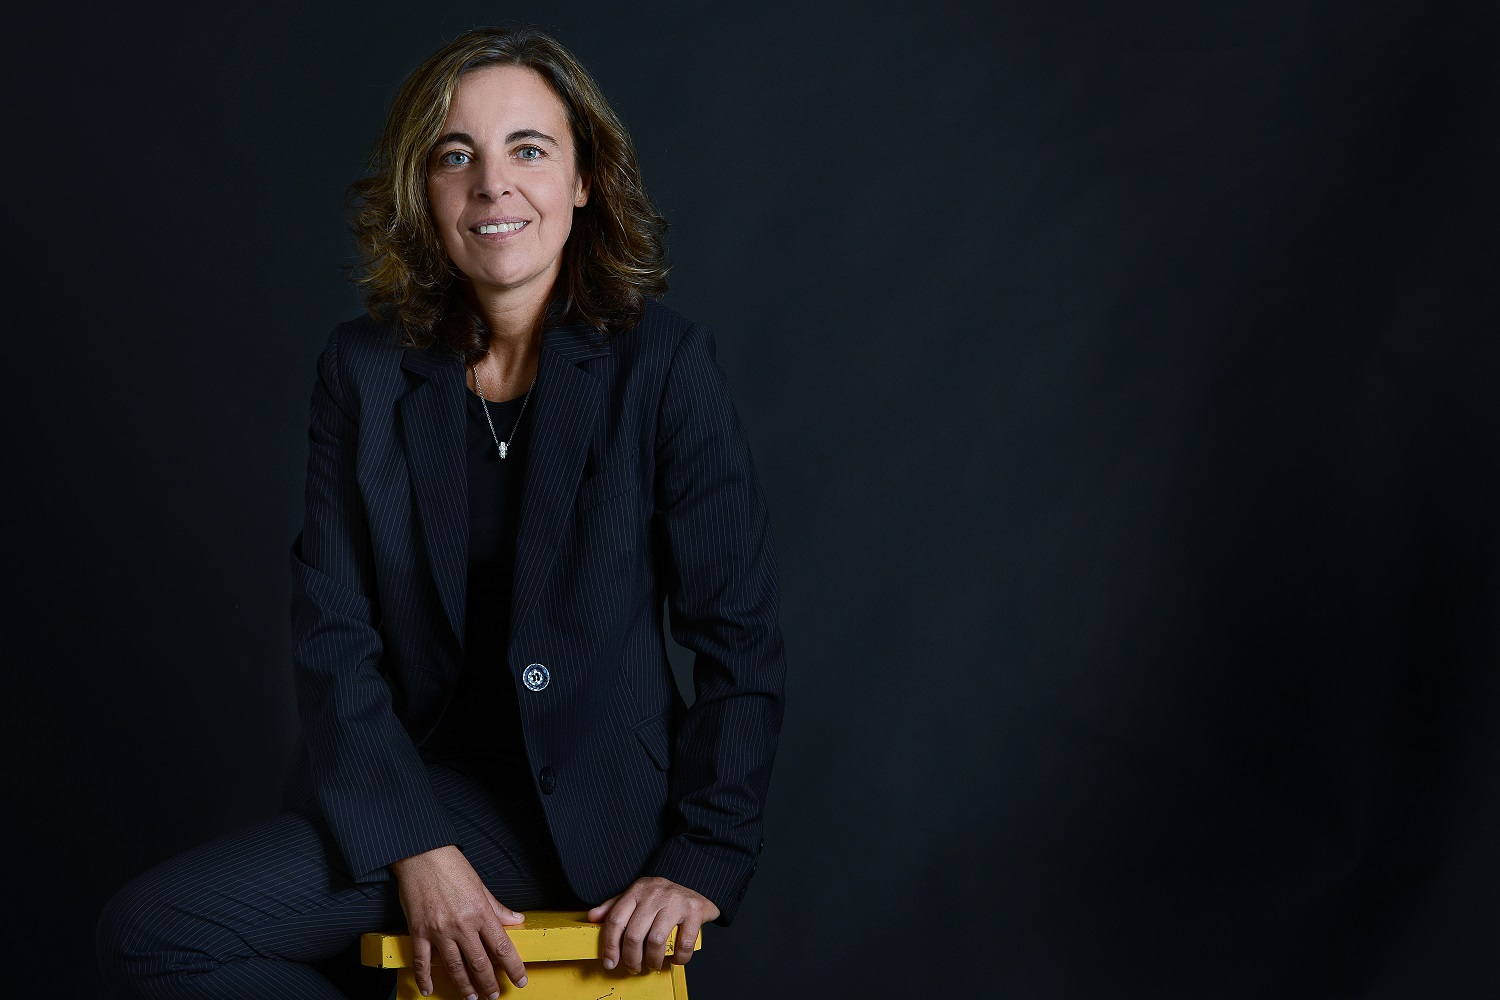 Cristina Viscontino, Cloudera